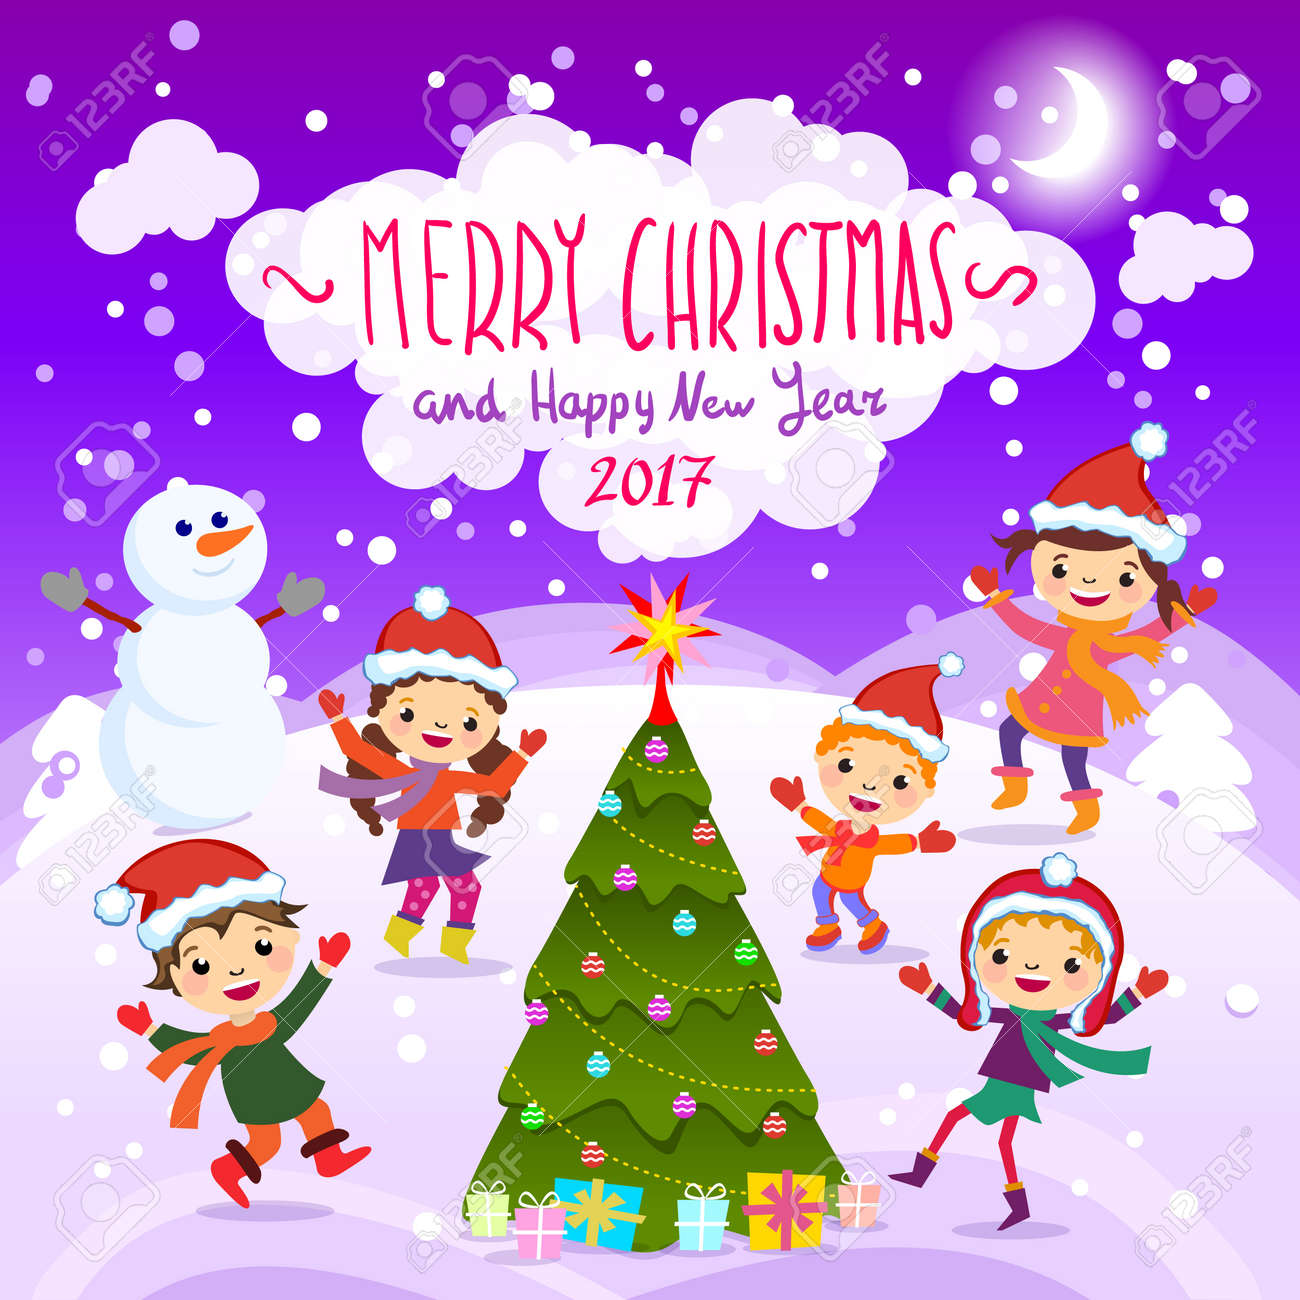 d3d022927a61e Stylish and bright Merry Christmas card in vector. Funny Elves dancing  under the snowfall.